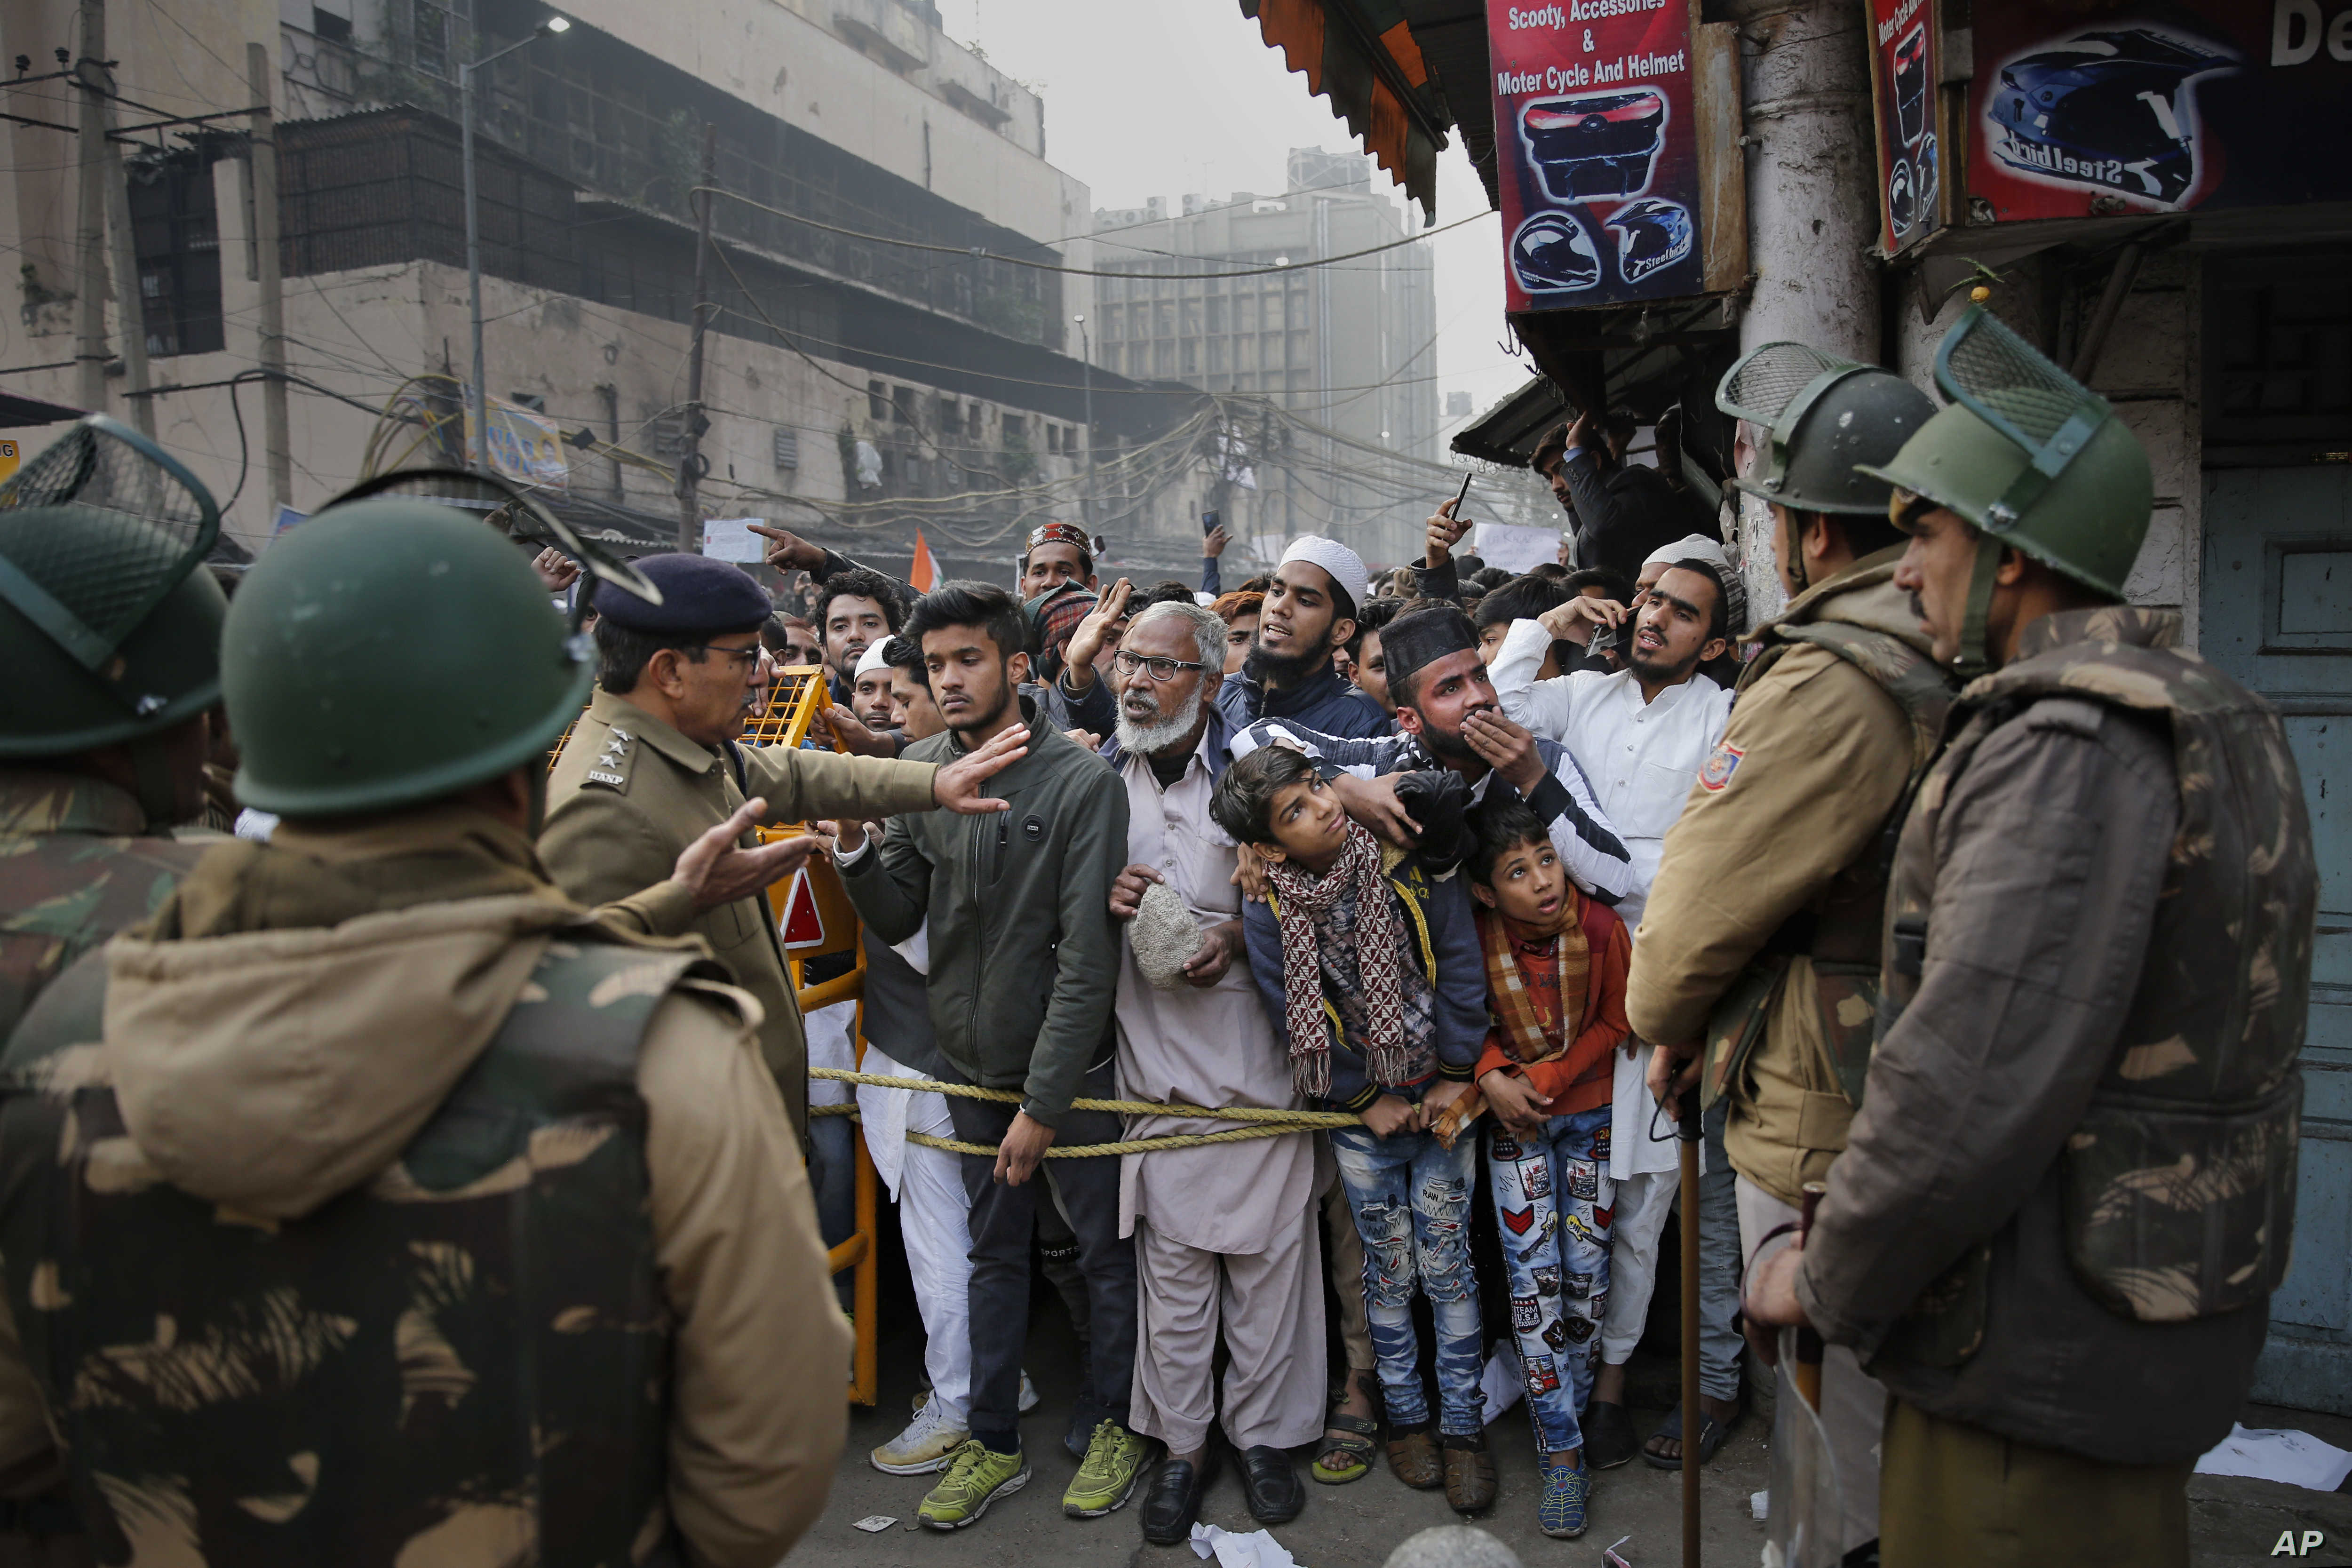 More Protests as India Grapples With Citizenship Law Fallout.